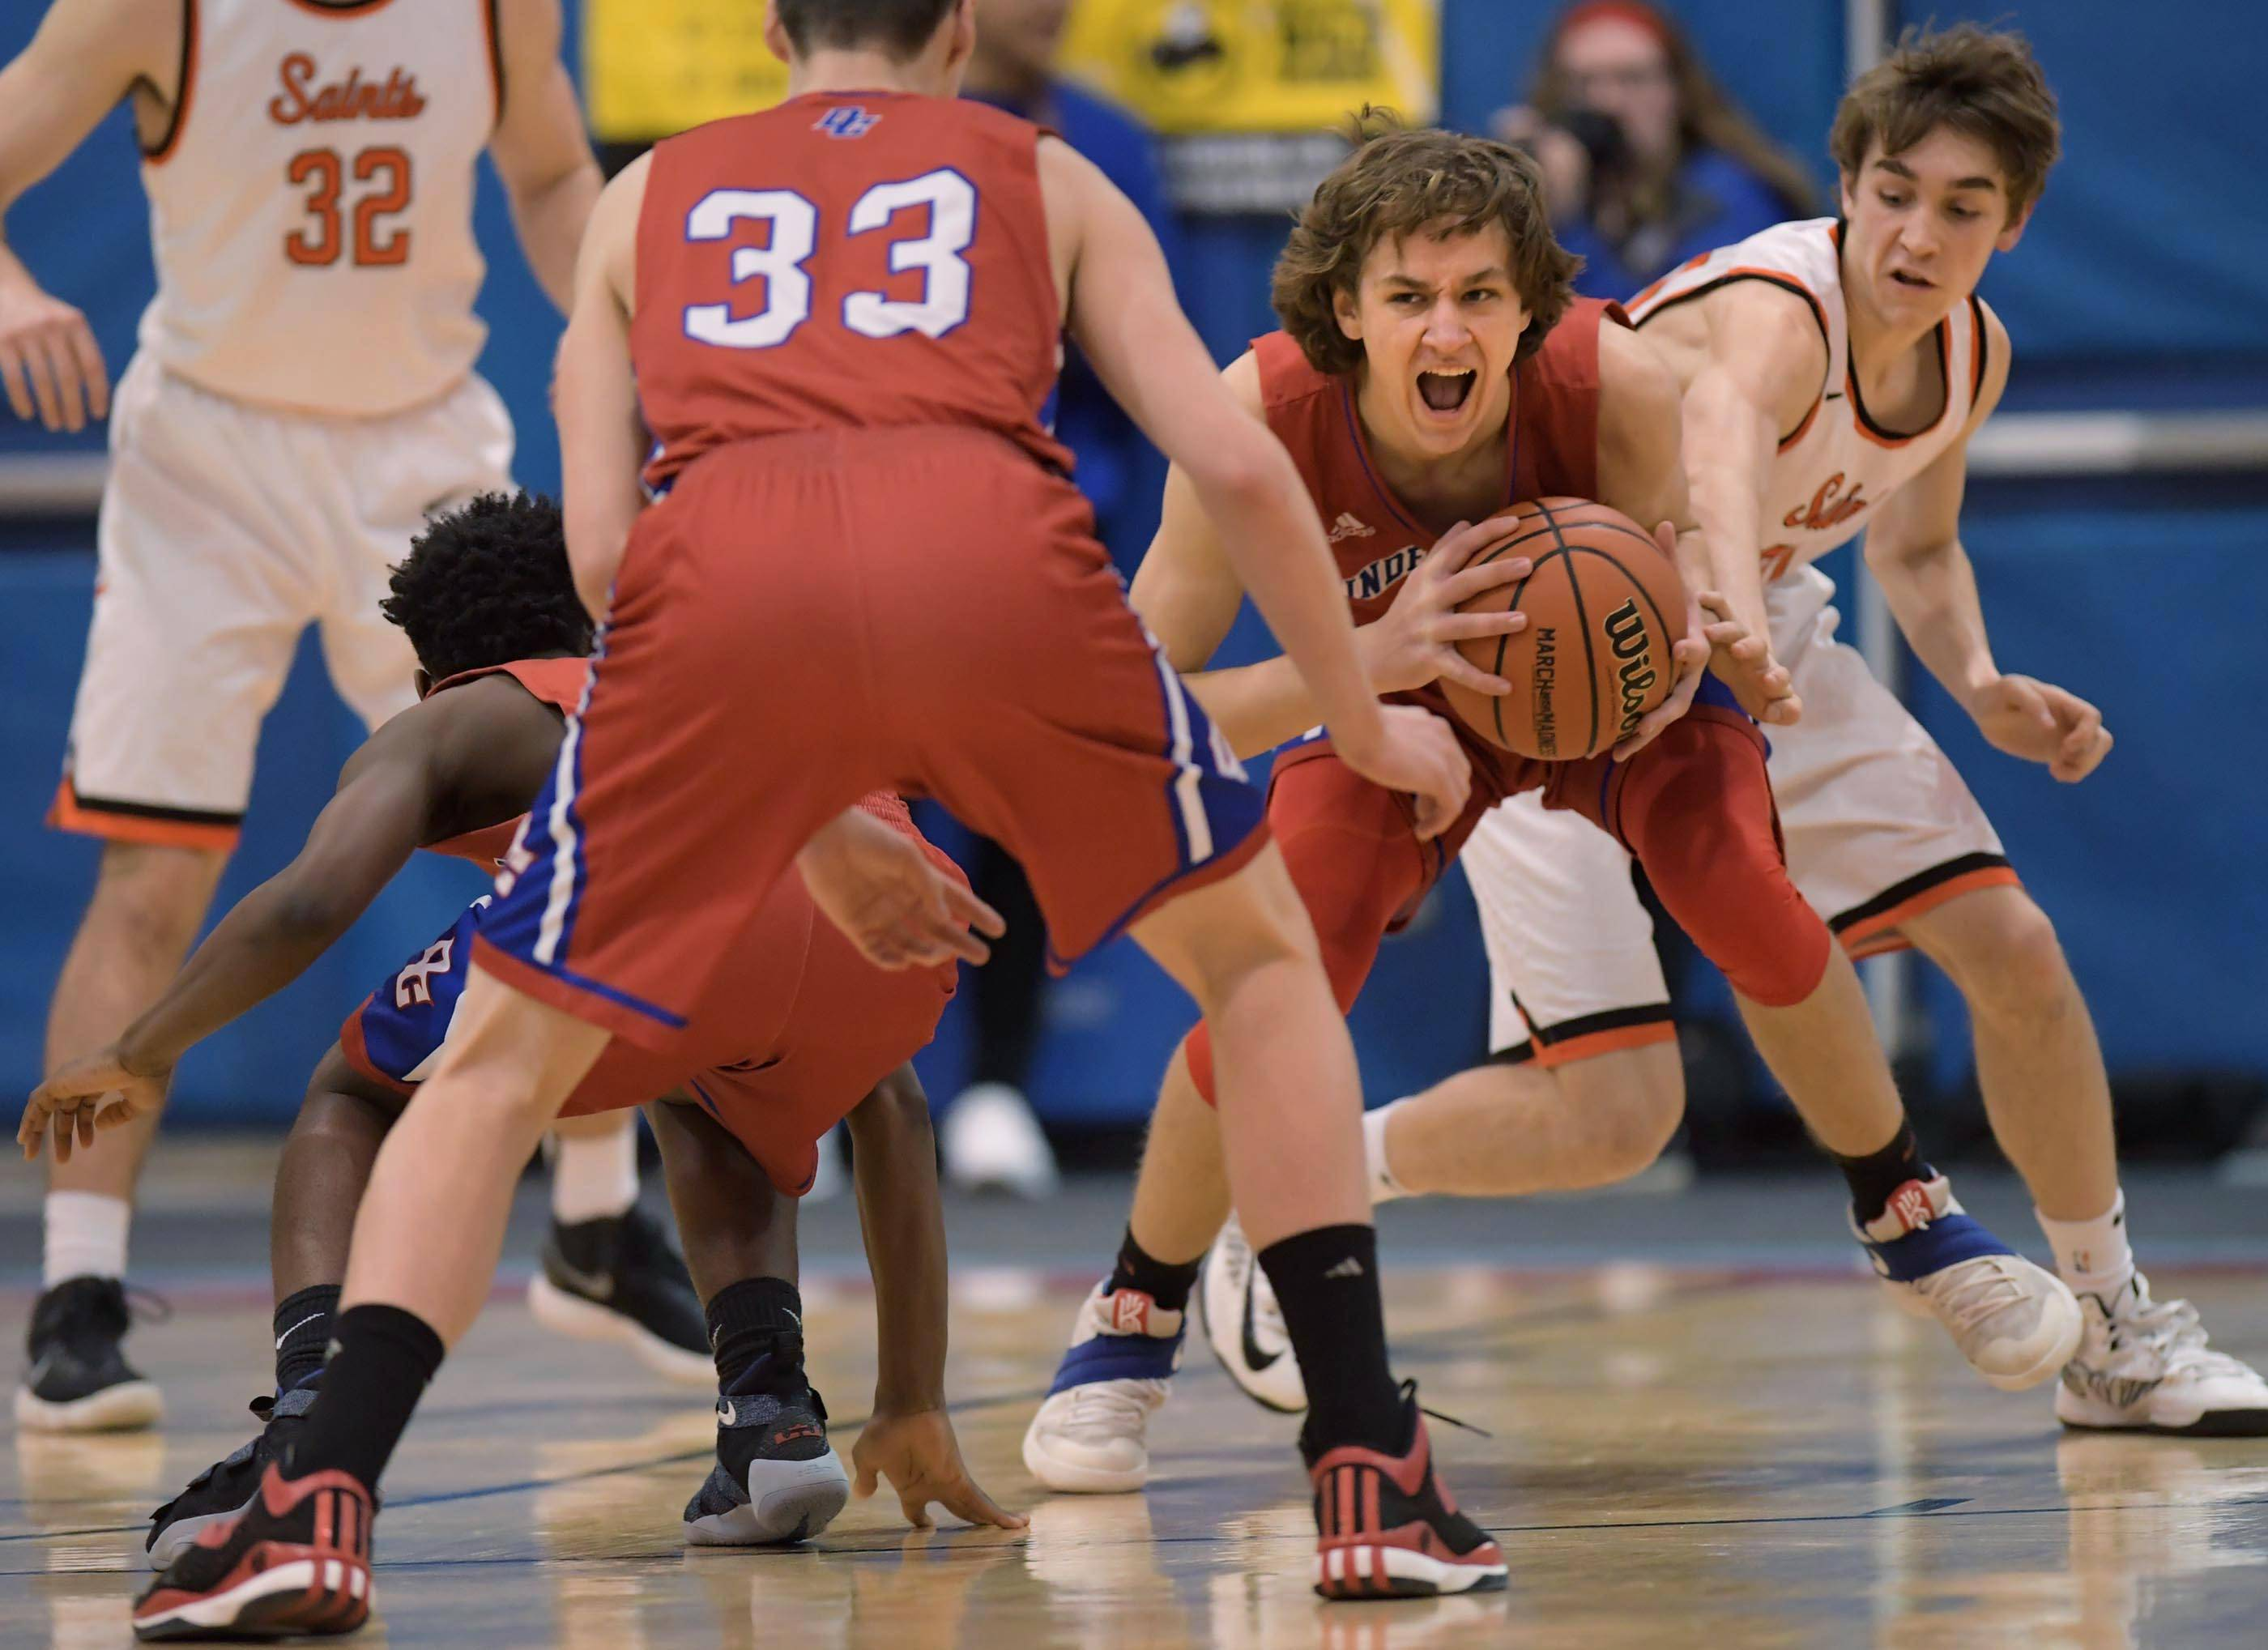 Dundee-Crown's Josh Raby comes up with a loose ball against St. Charles East in the Class 4A Dundee-Crown boys basketball semifinal regional game Wednesday.